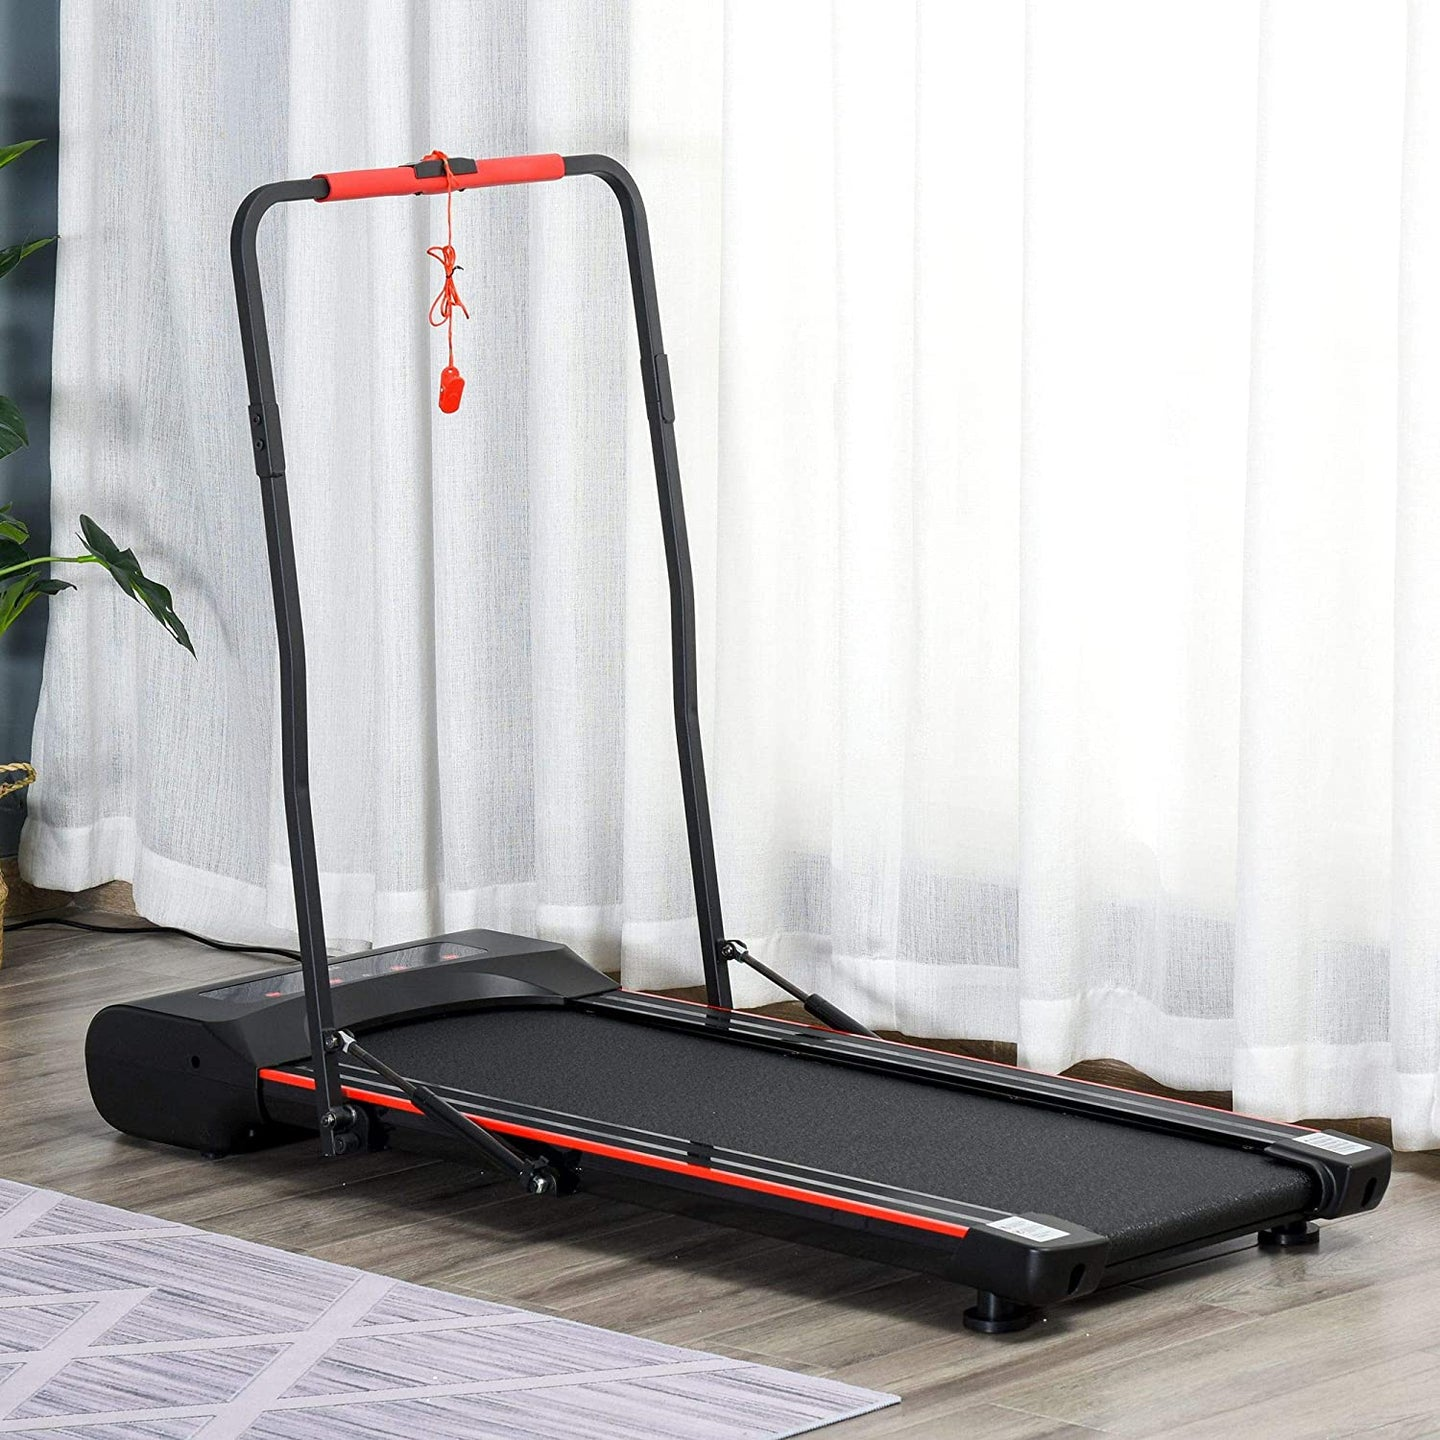 HOMCOM Foldable Walking Machine Treadmill 1-6km/h with LED Display & Remote Control Exercise Fitness for Home Office